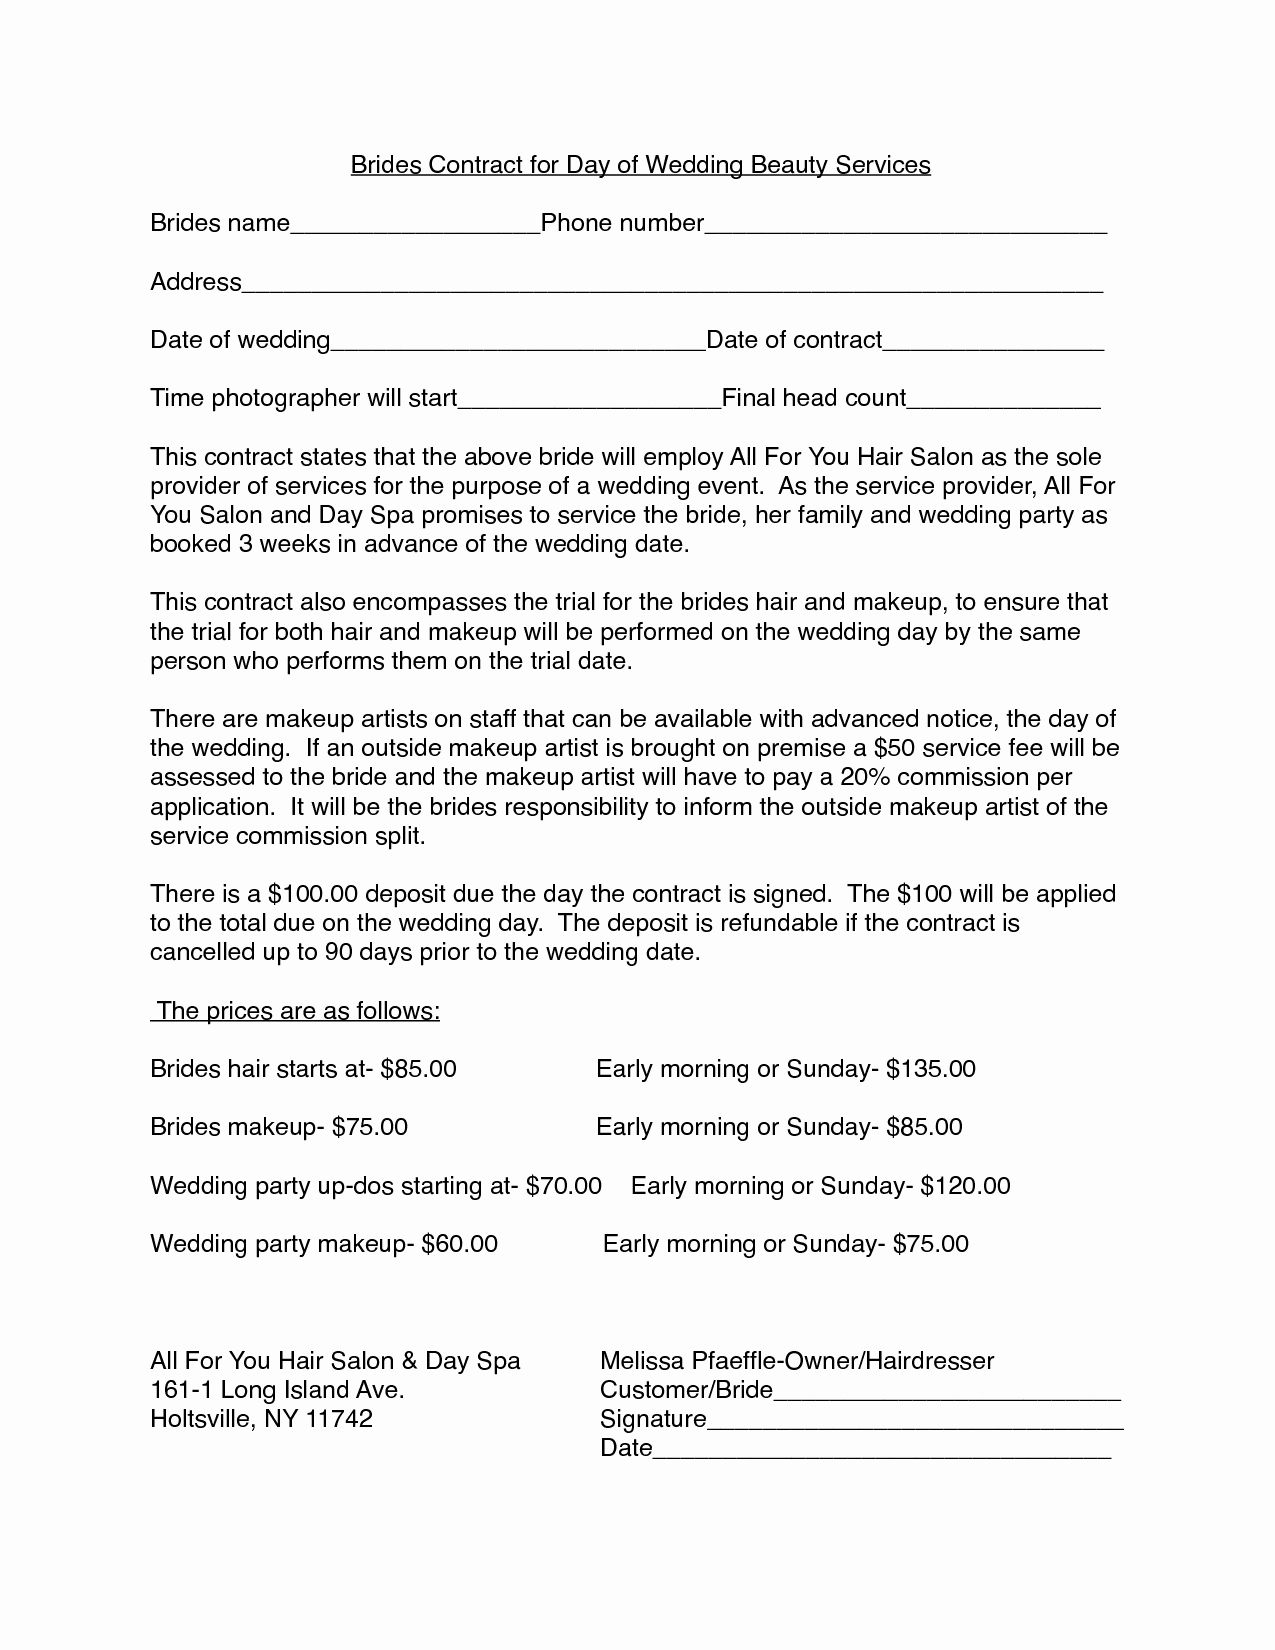 Hair Stylist Contract for Wedding Unique Hair Stylist